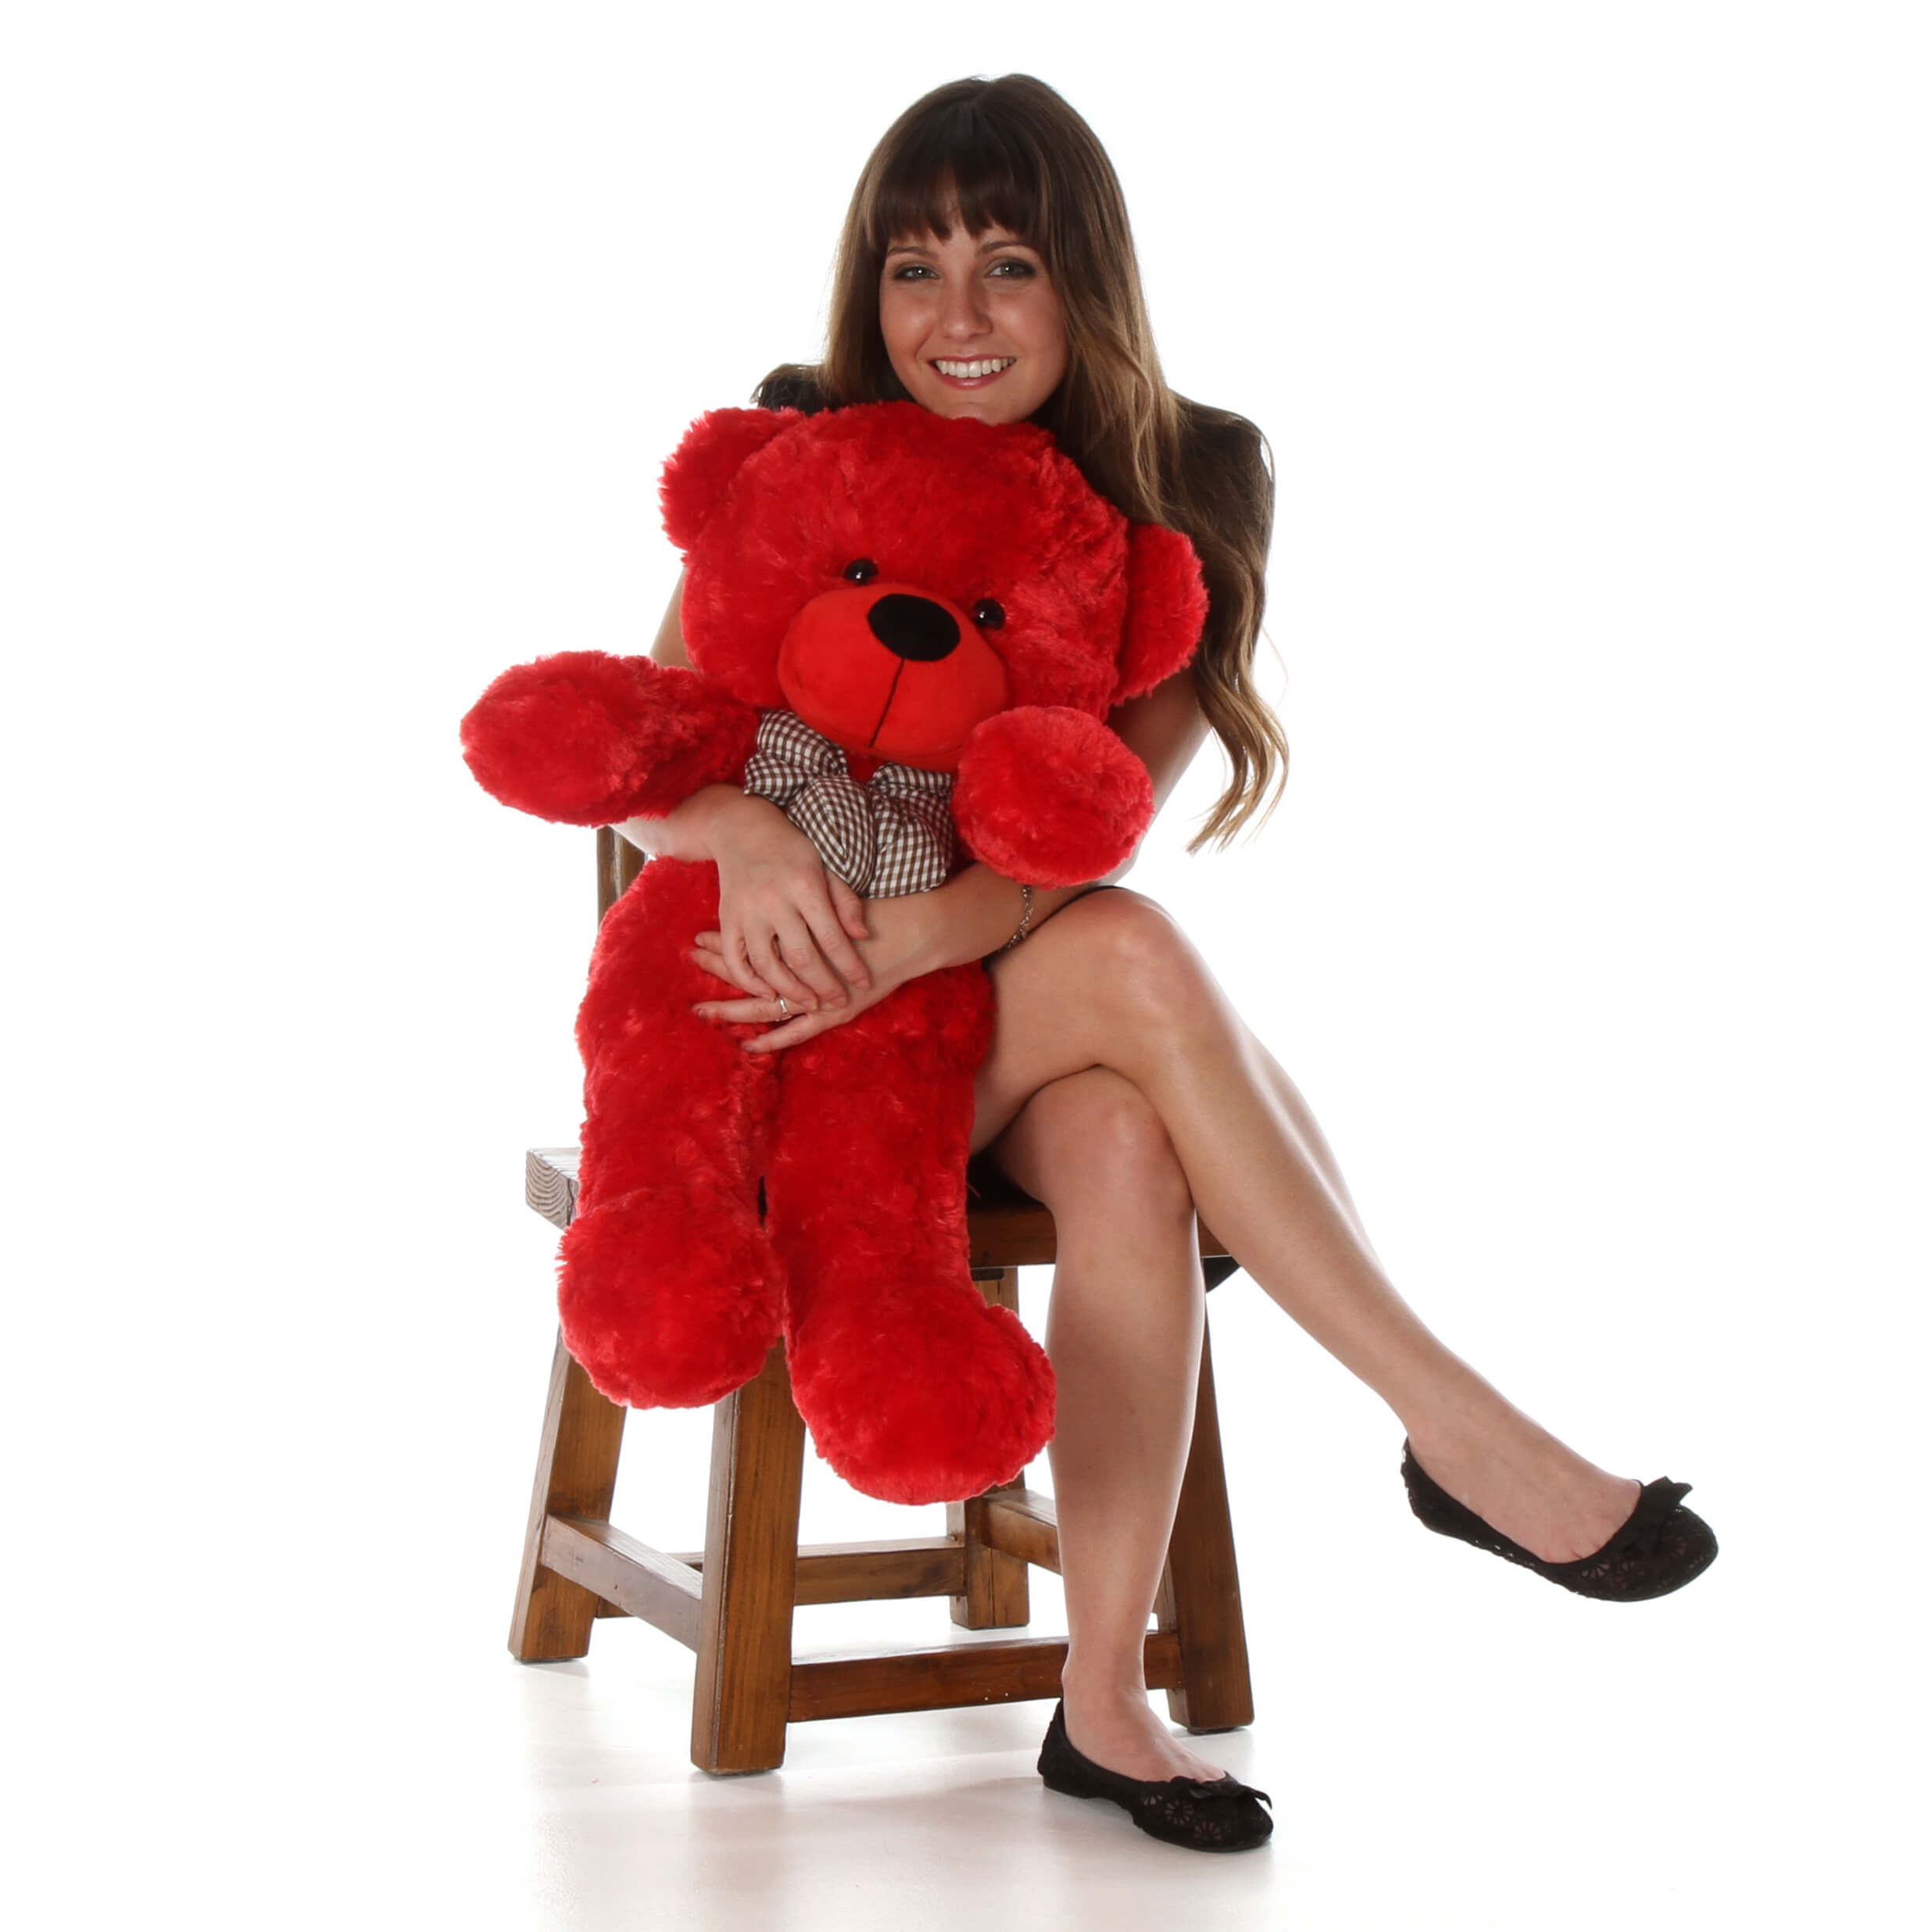 30in-bitsy-cuddles-red-teddy-bear-1.jpg